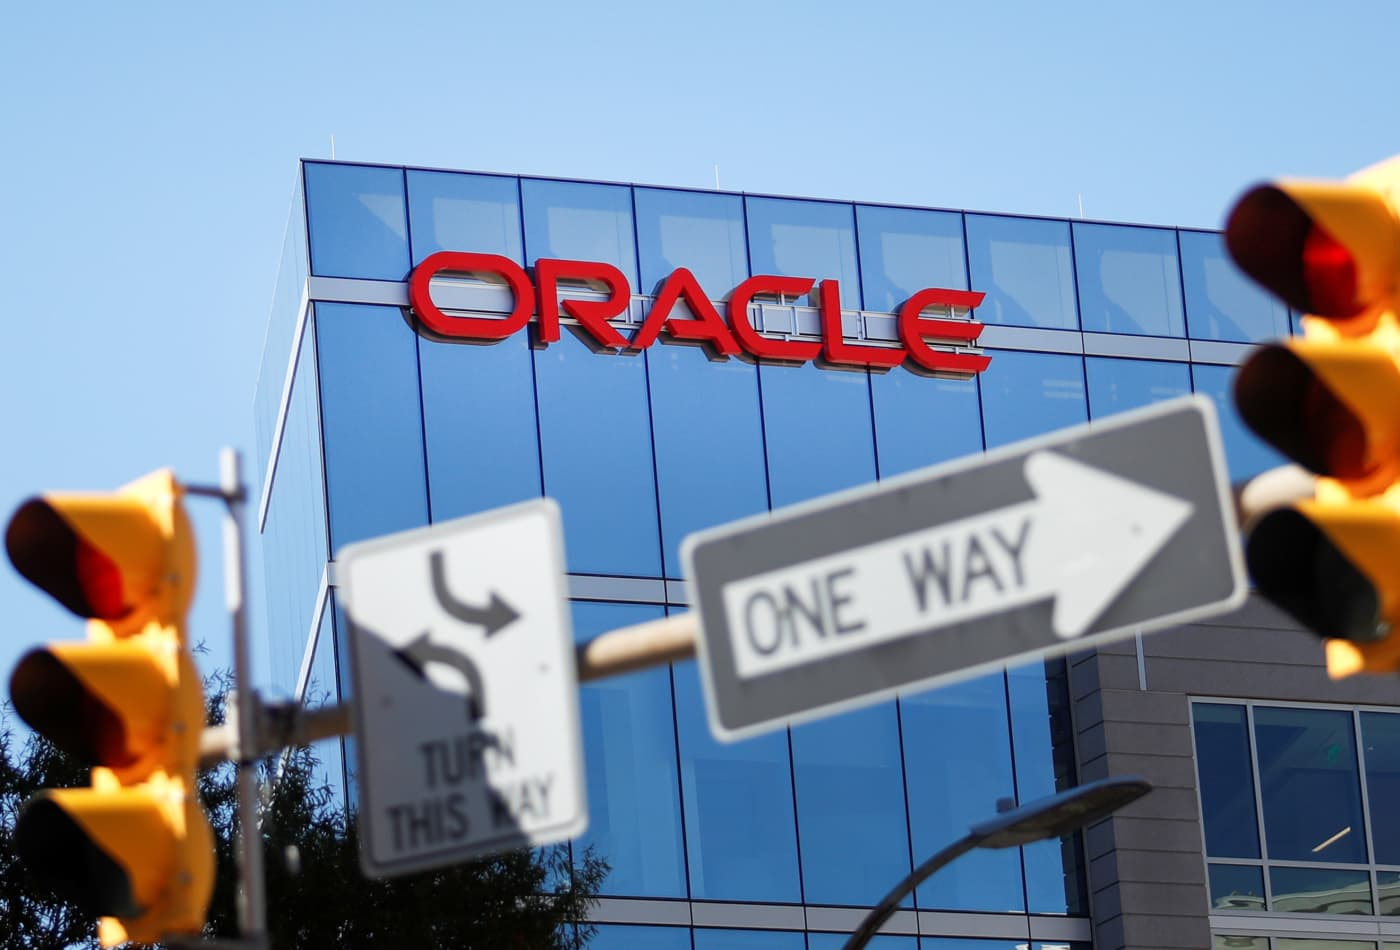 Oracle will move its annual OpenWorld conference to Las Vegas because San Francisco is too expensive